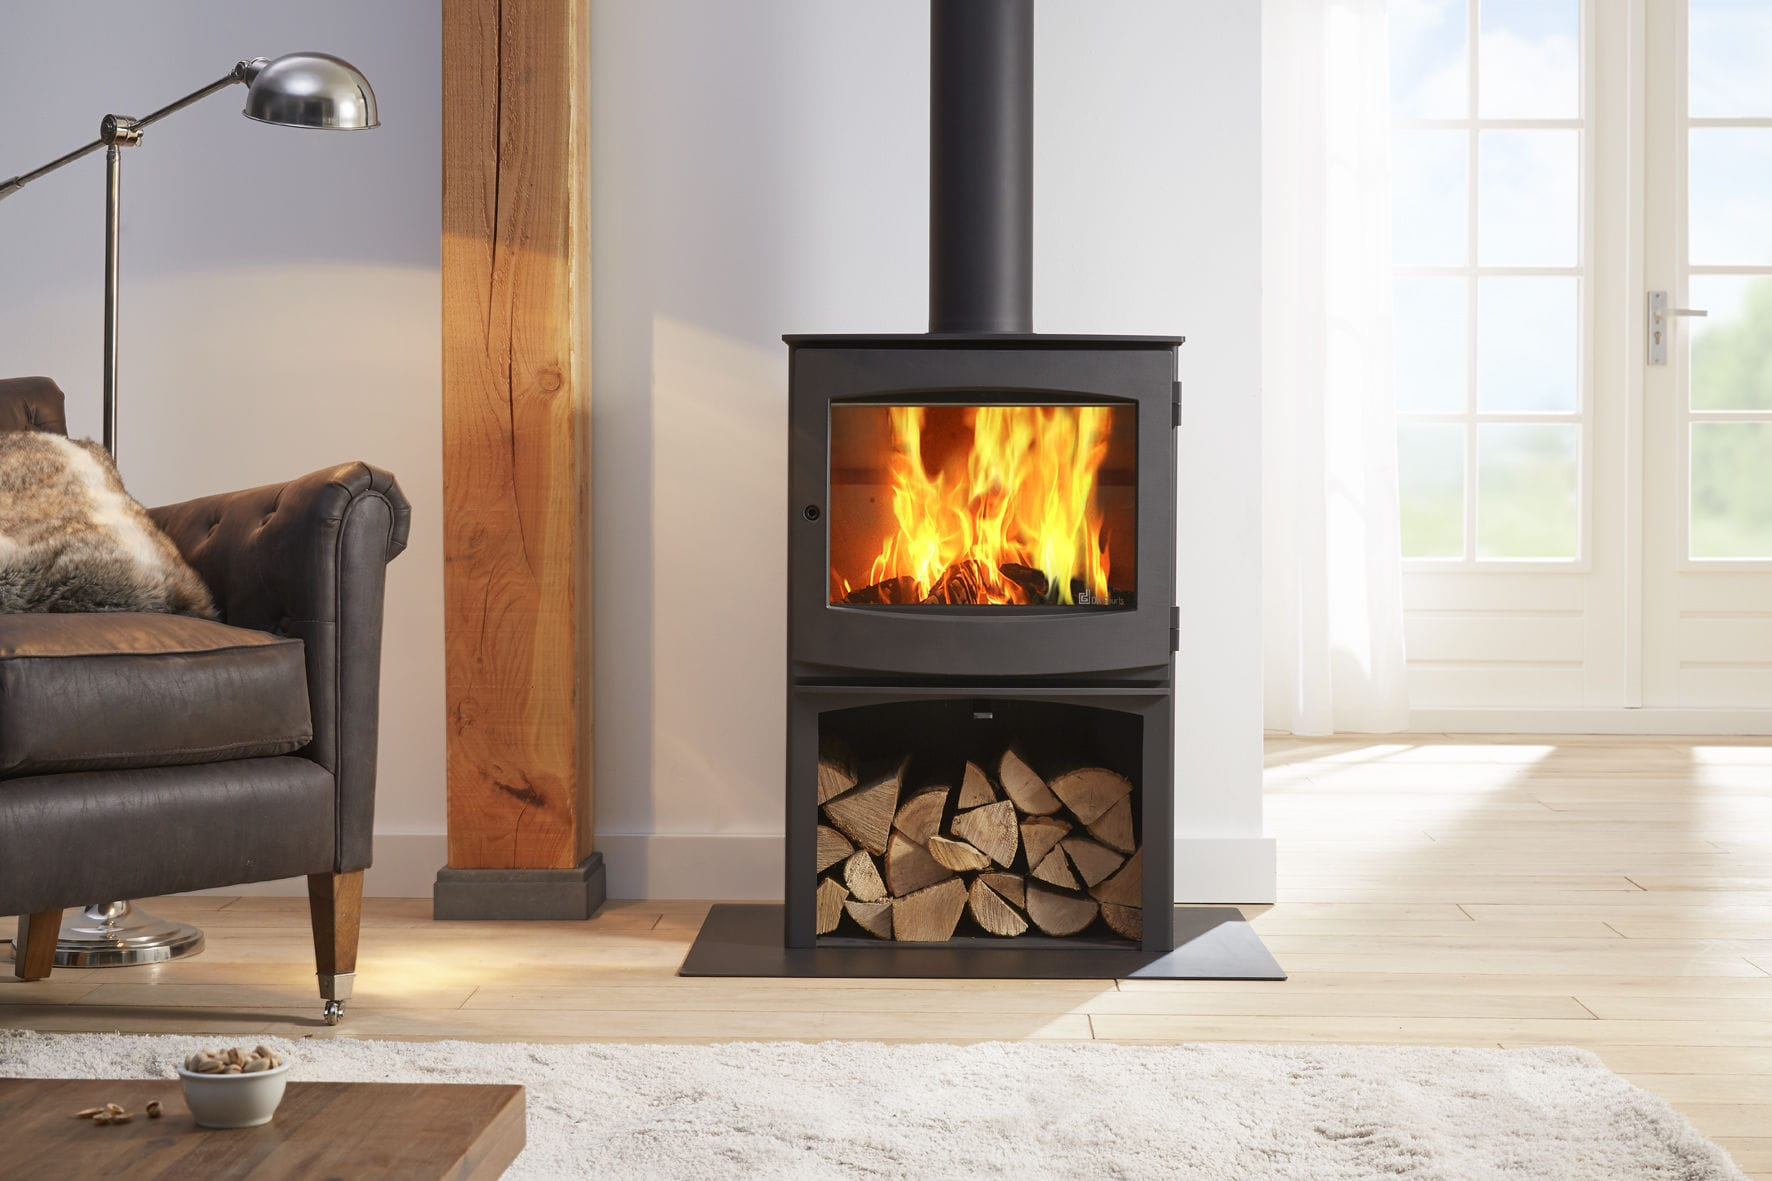 Wood heating stove / contemporary / cast iron - IVAR 8 STORE by ...